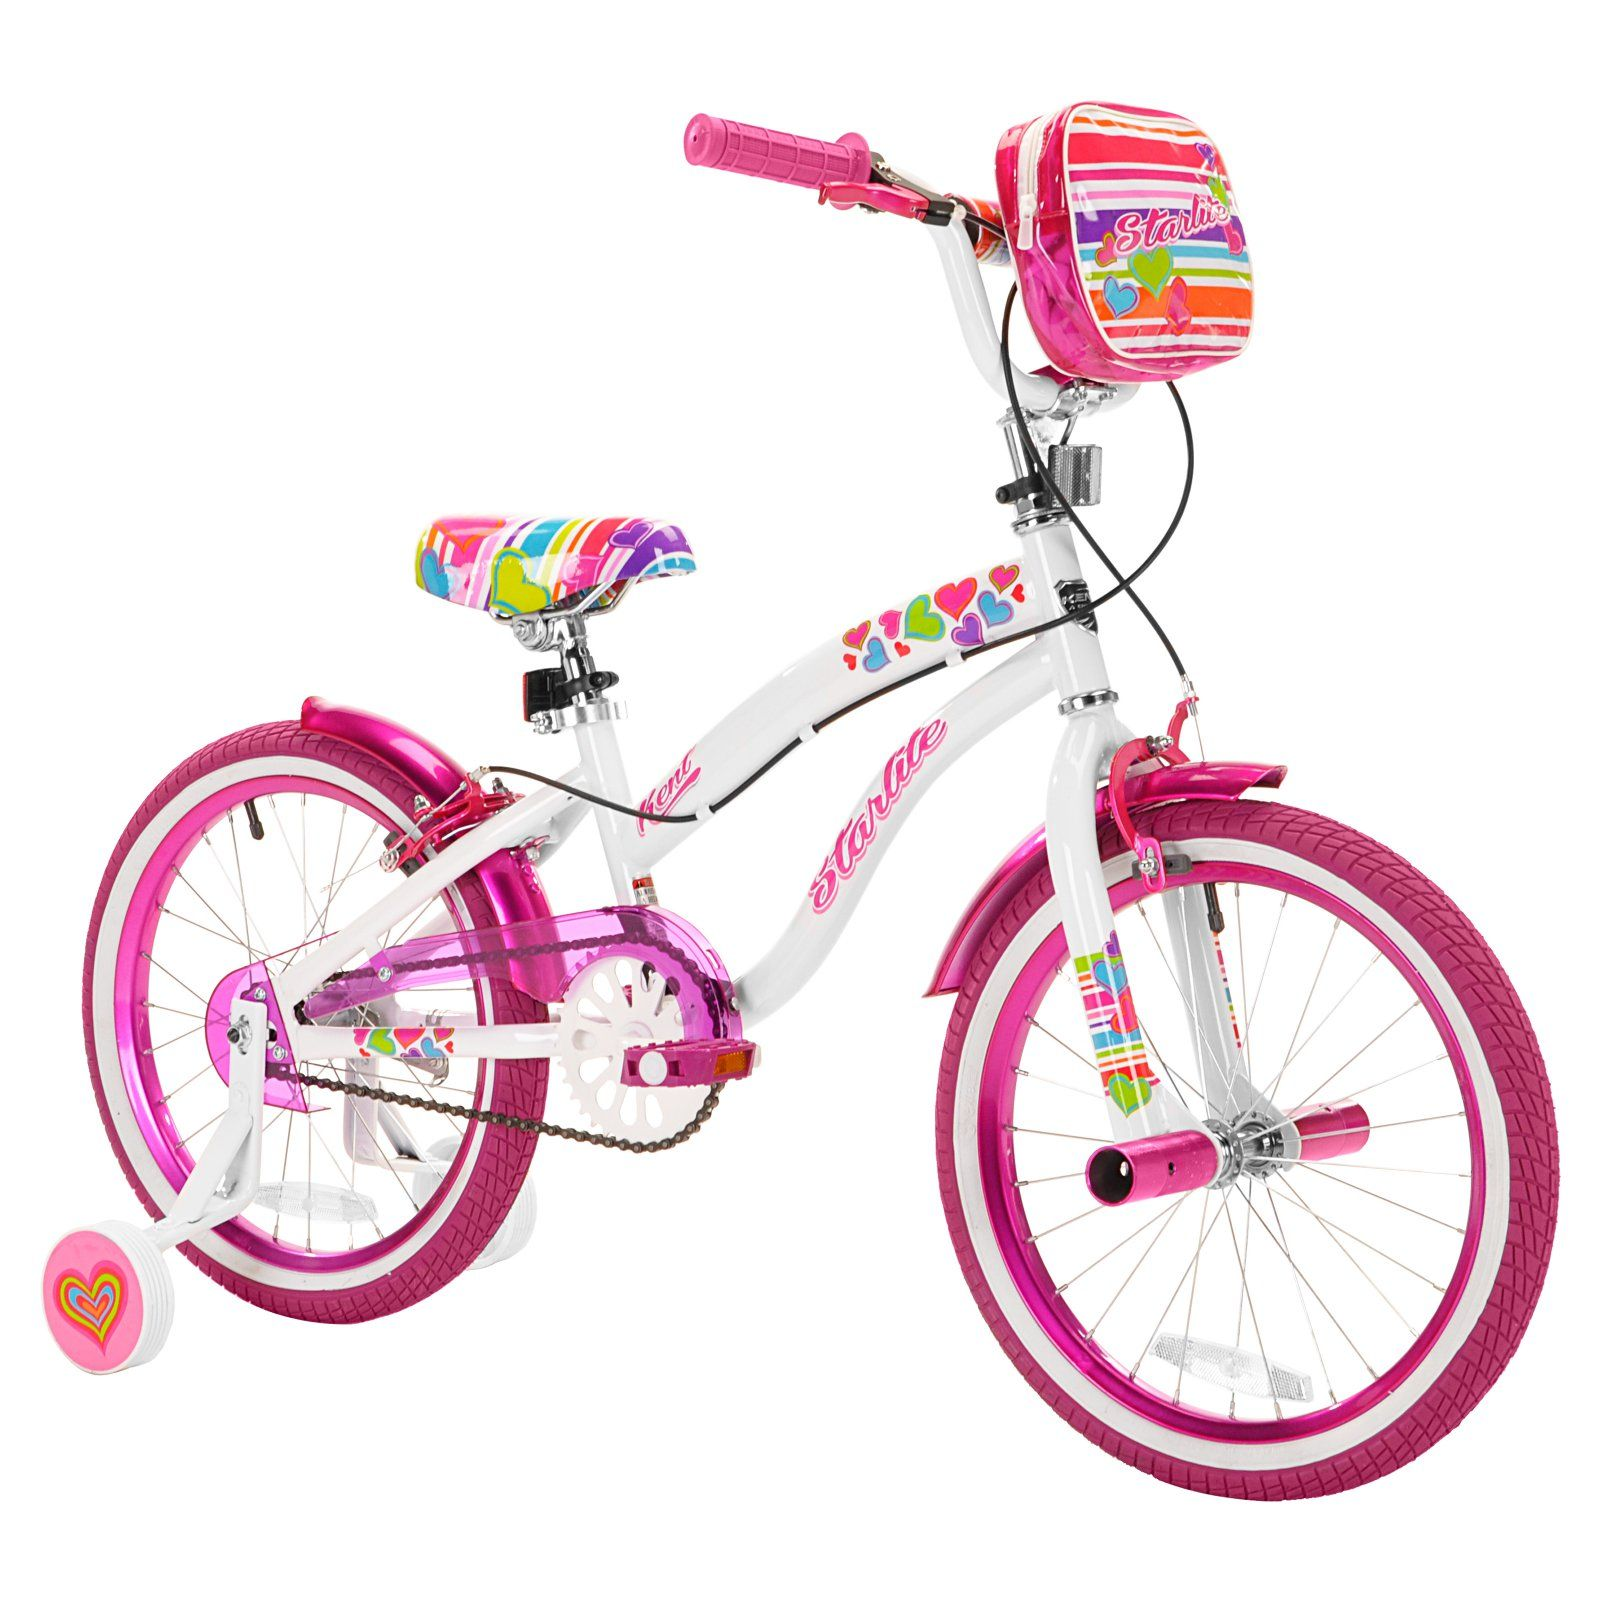 a755dab4017 Kent 18 in. Starlite Bike | Products in 2019 | Bicycle girl, Kids ...